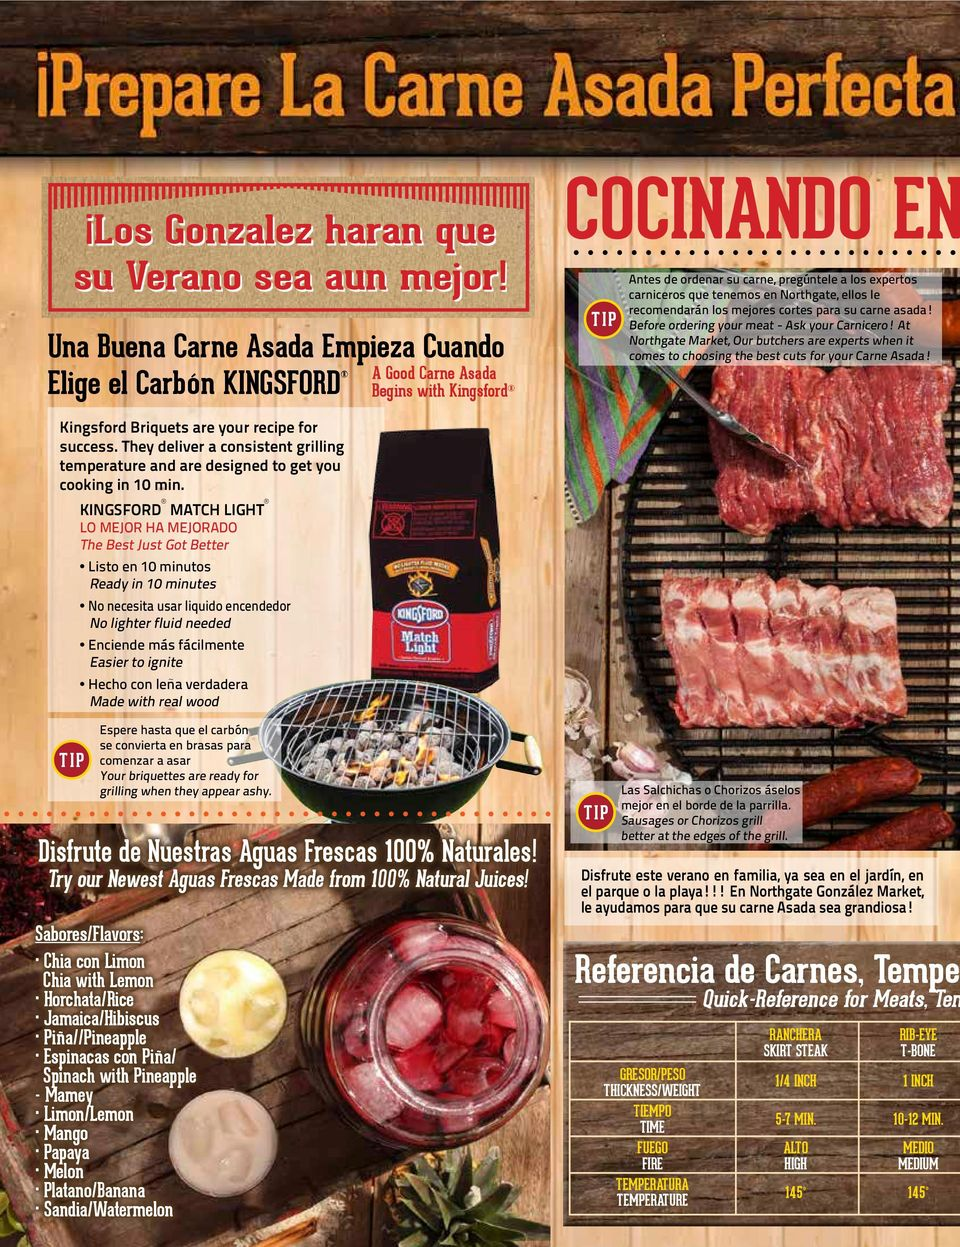 Northgate, ellos le recomendarán los mejores cortes para su carne asada! Before ordering your meat - Ask your Carnicero!